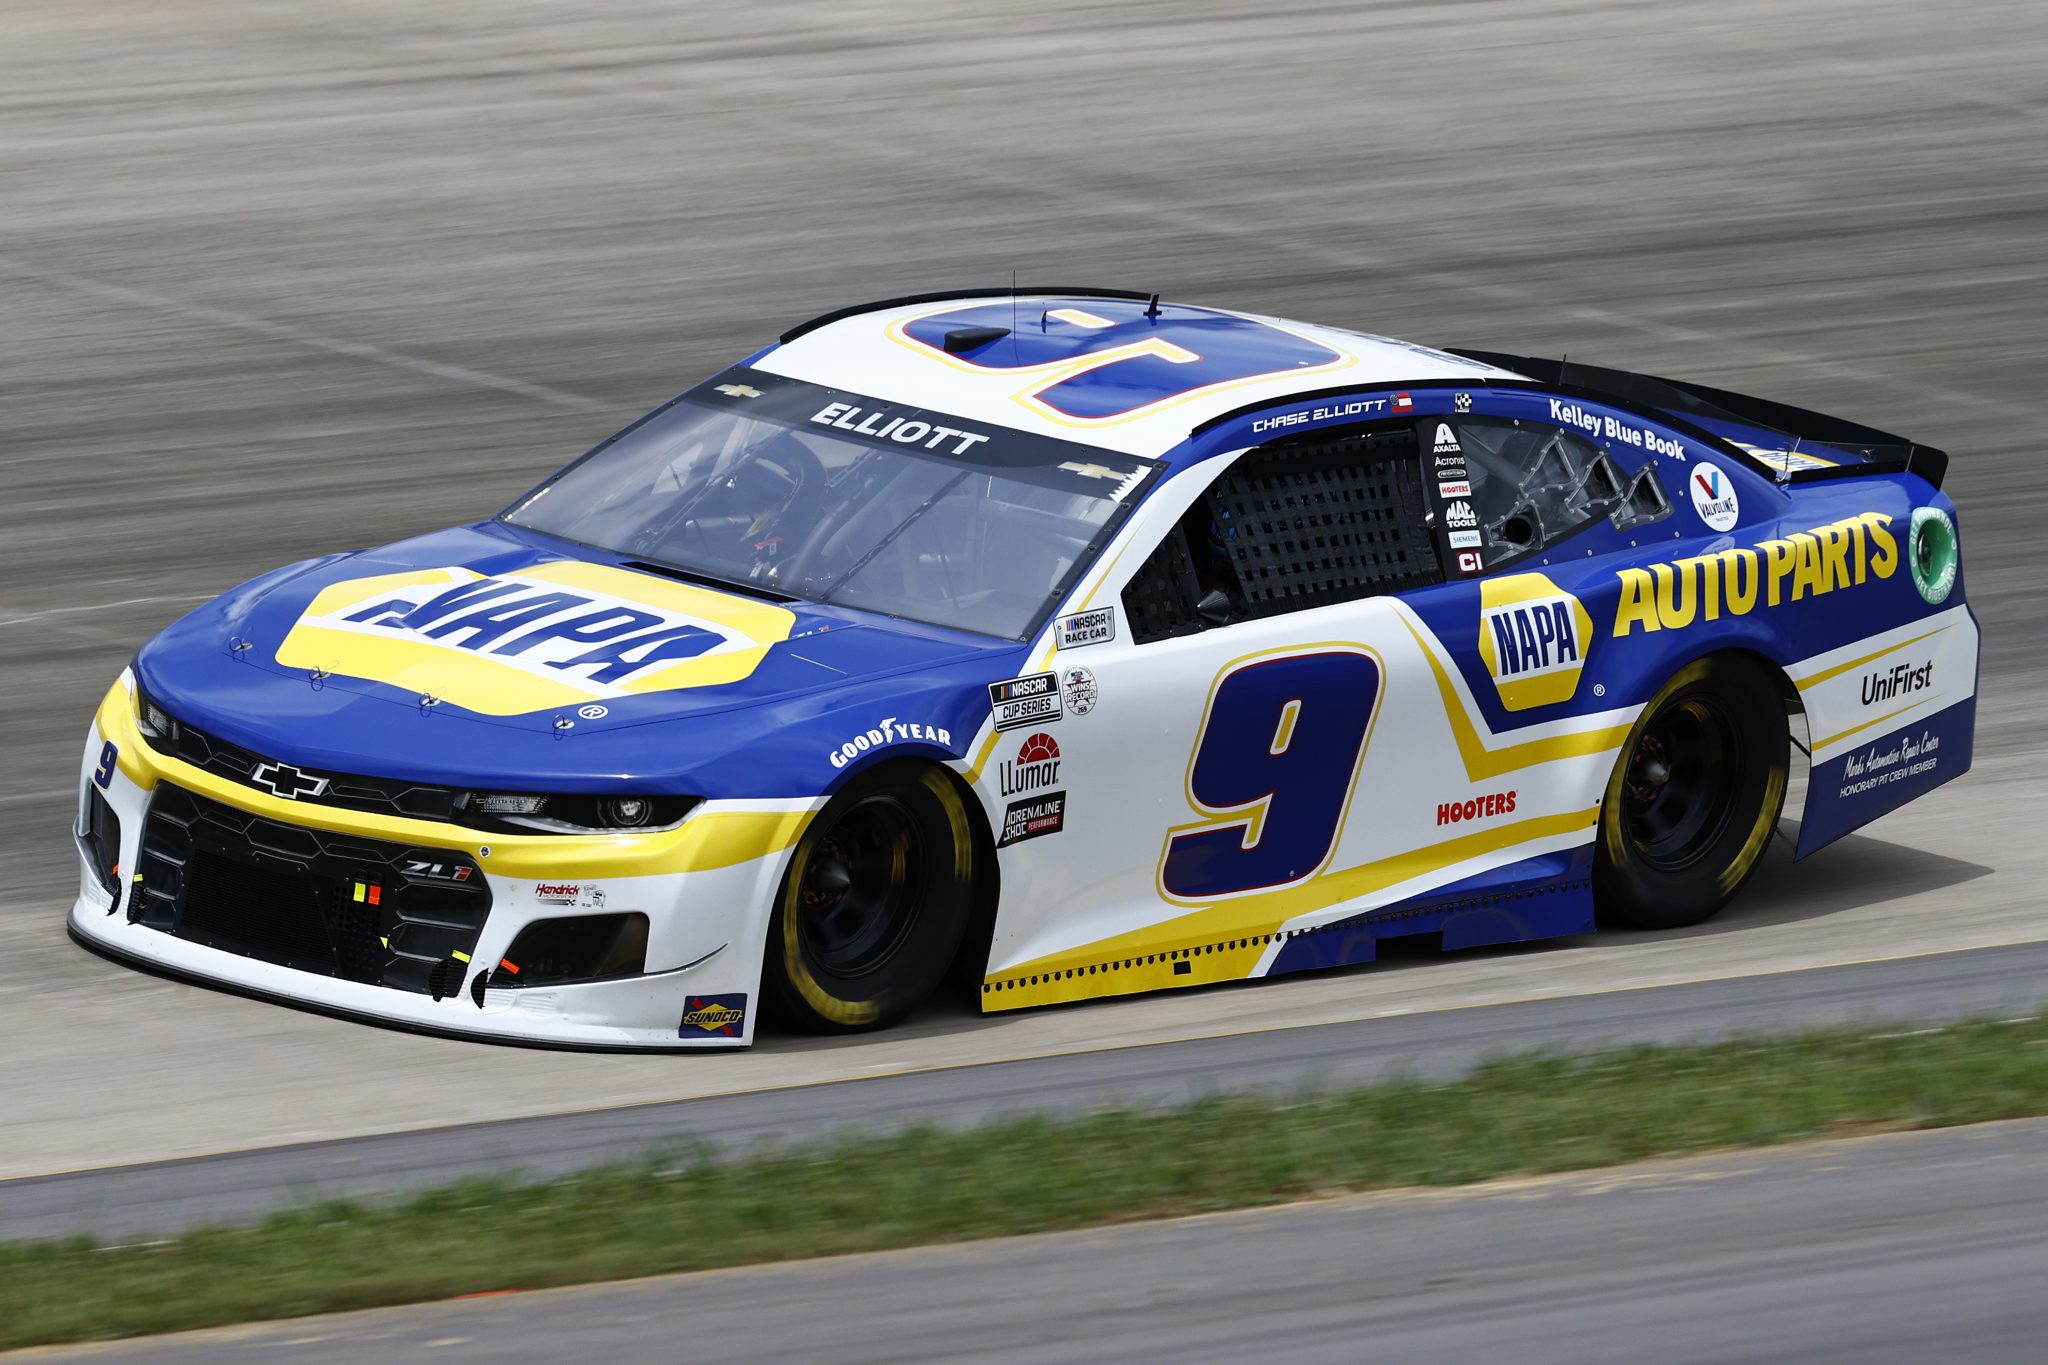 LEBANON, TENNESSEE - JUNE 19: Chase Elliott, driver of the #9 NAPA Auto Parts Chevrolet, drives during practice for the NASCAR Cup Series Ally 400 at Nashville Superspeedway on June 19, 2021 in Lebanon, Tennessee. (Photo by Jared C. Tilton/Getty Images)   Getty Images